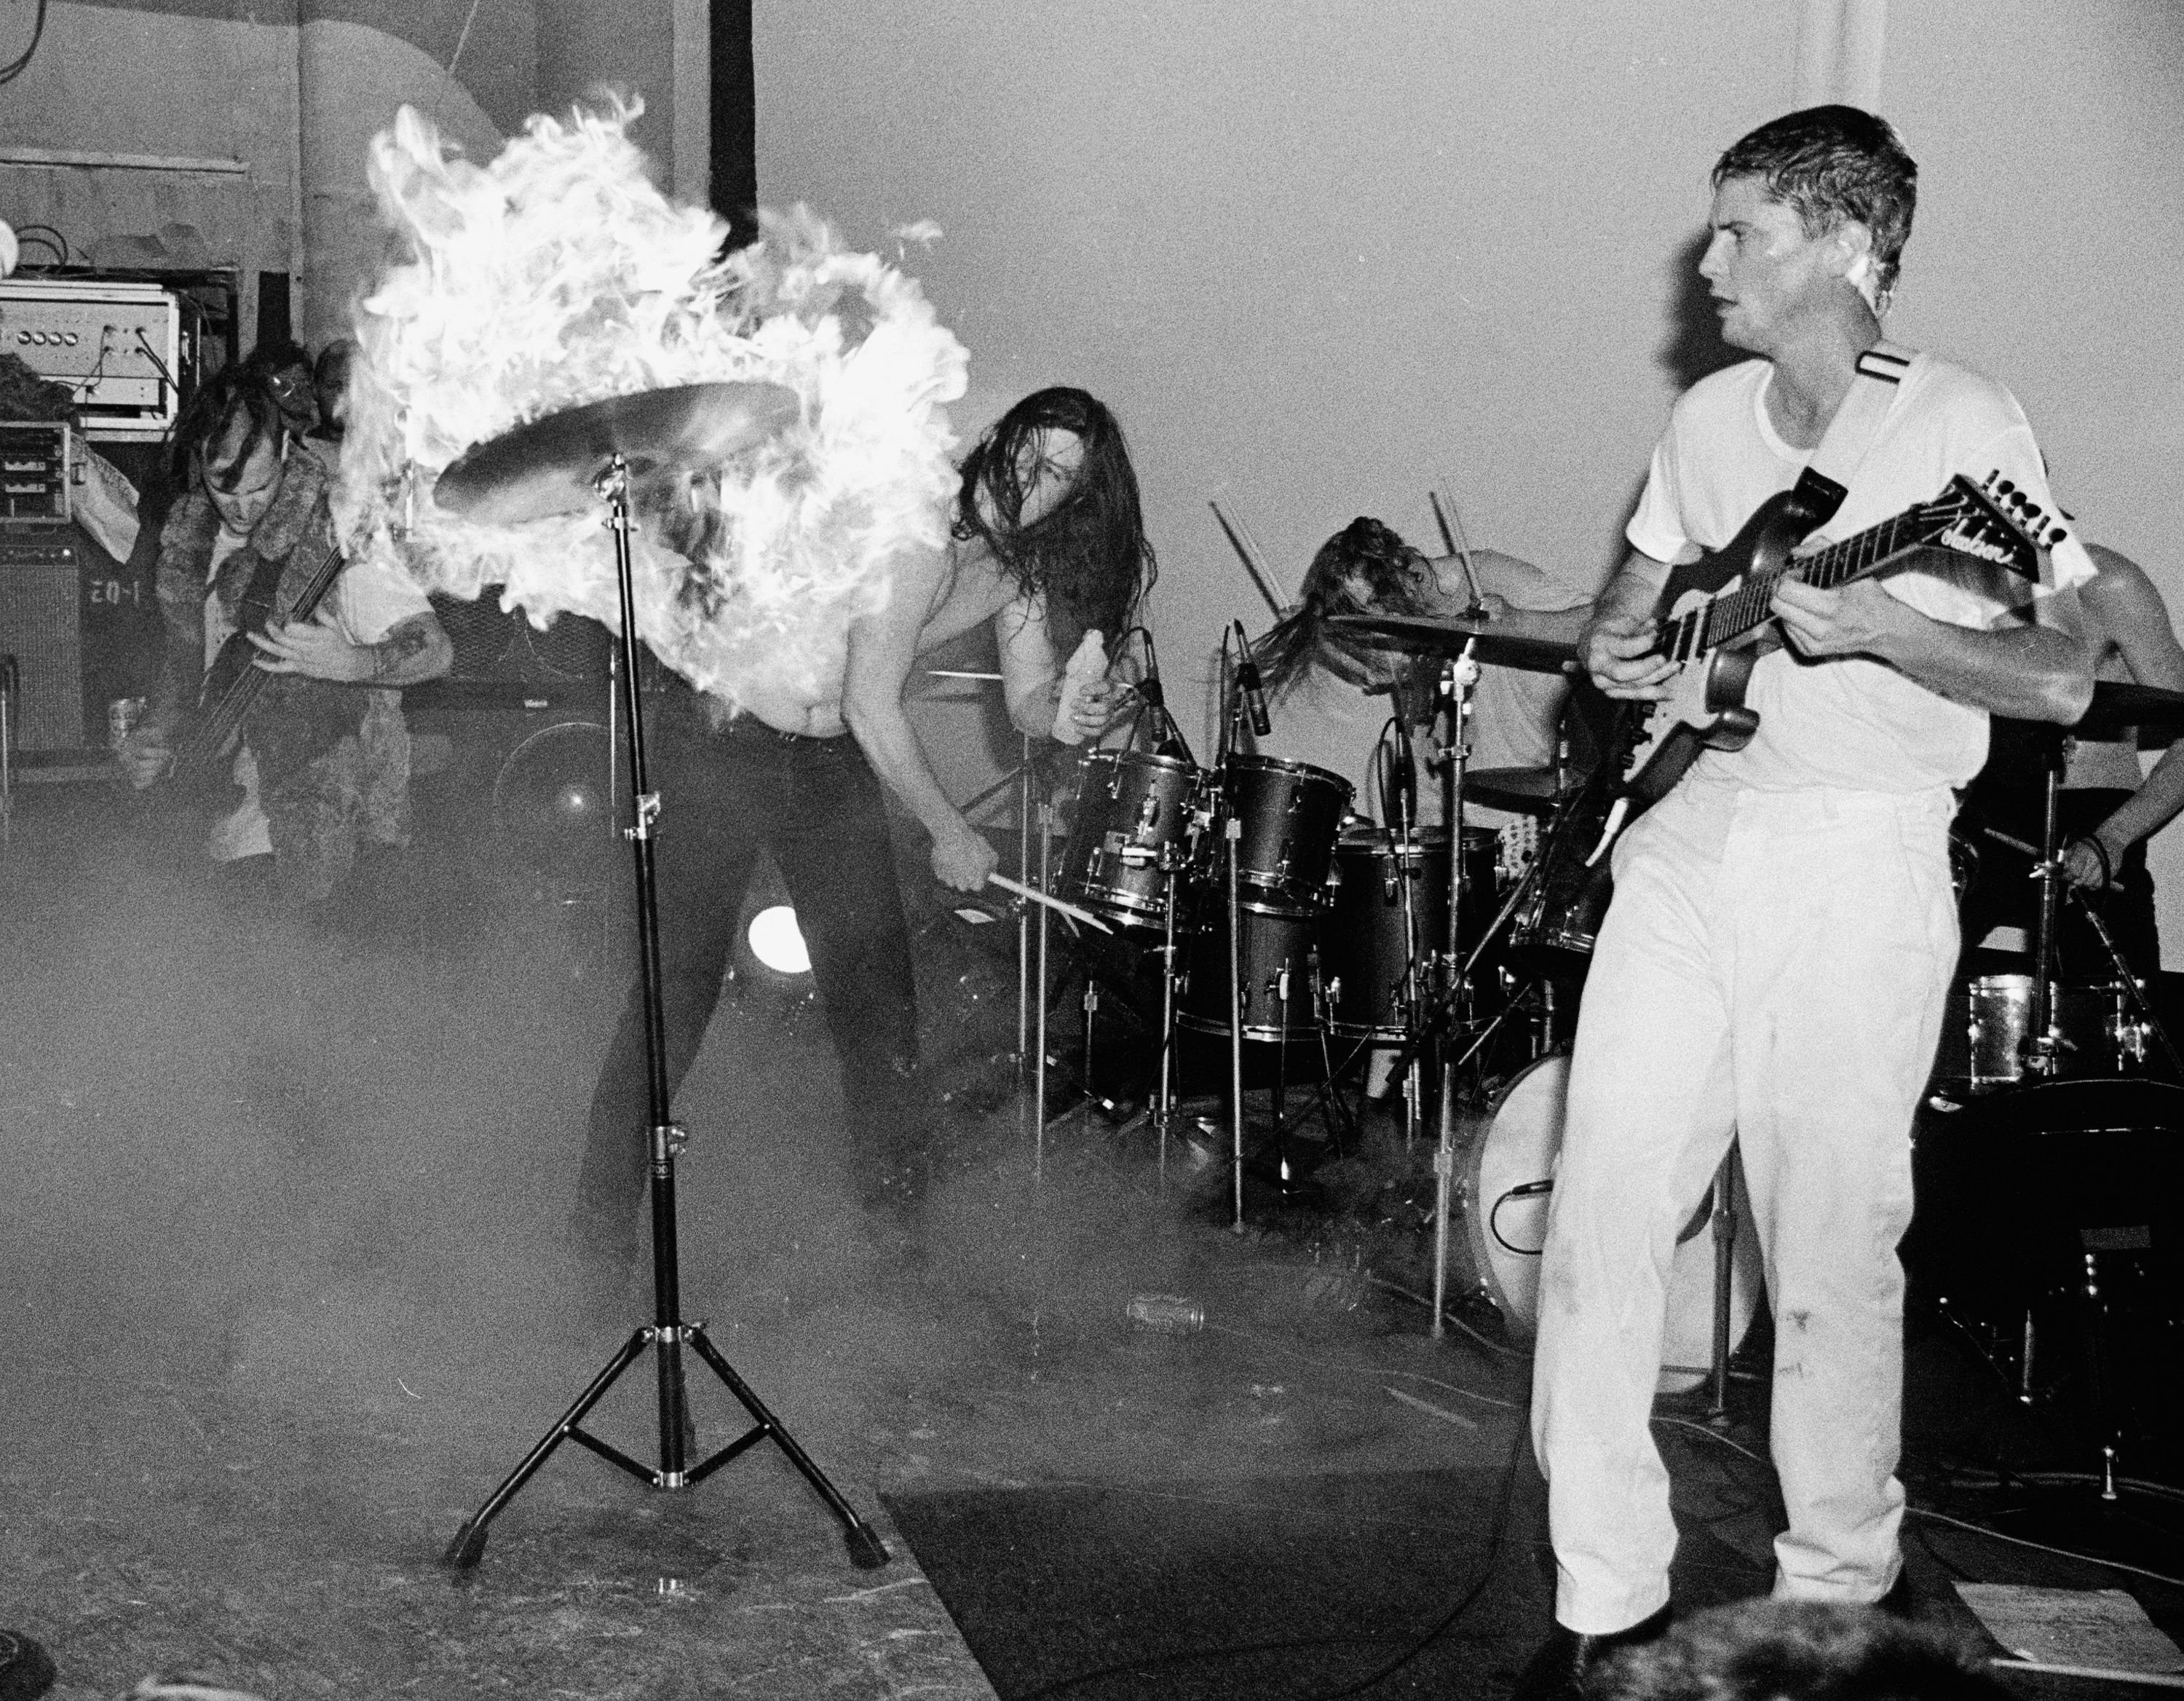 Gibby Haynes hitting a flaming cymbal with a drum stick while his band plays